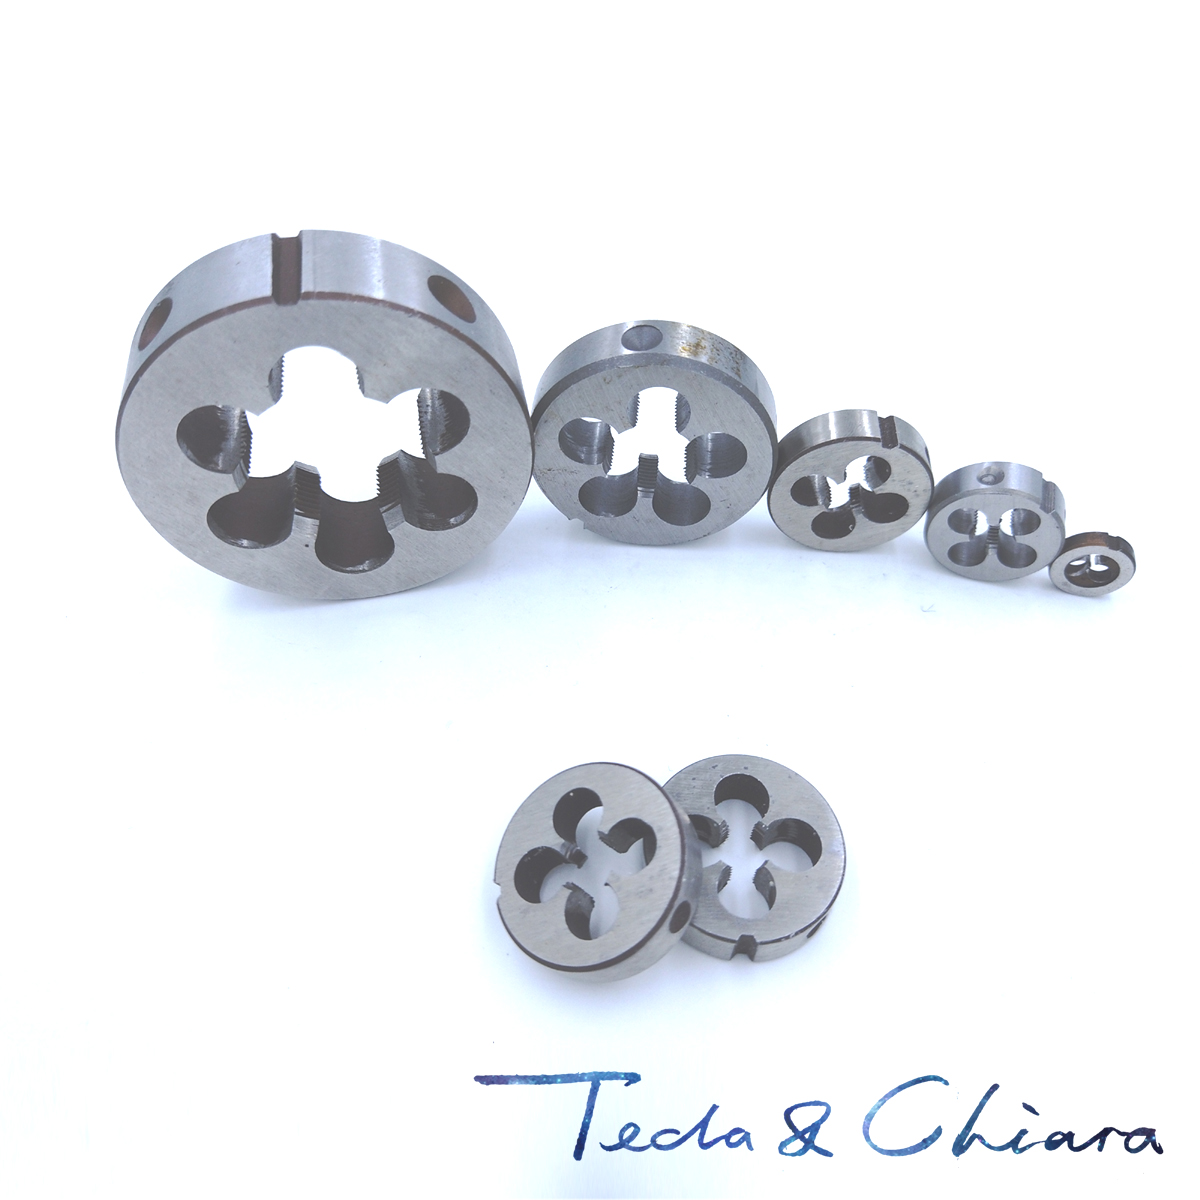 1Pc 1/2 14 NPT 1/2-14 Right Hand Die Pitch Threading Tools For Mold Machining TPI High-quality